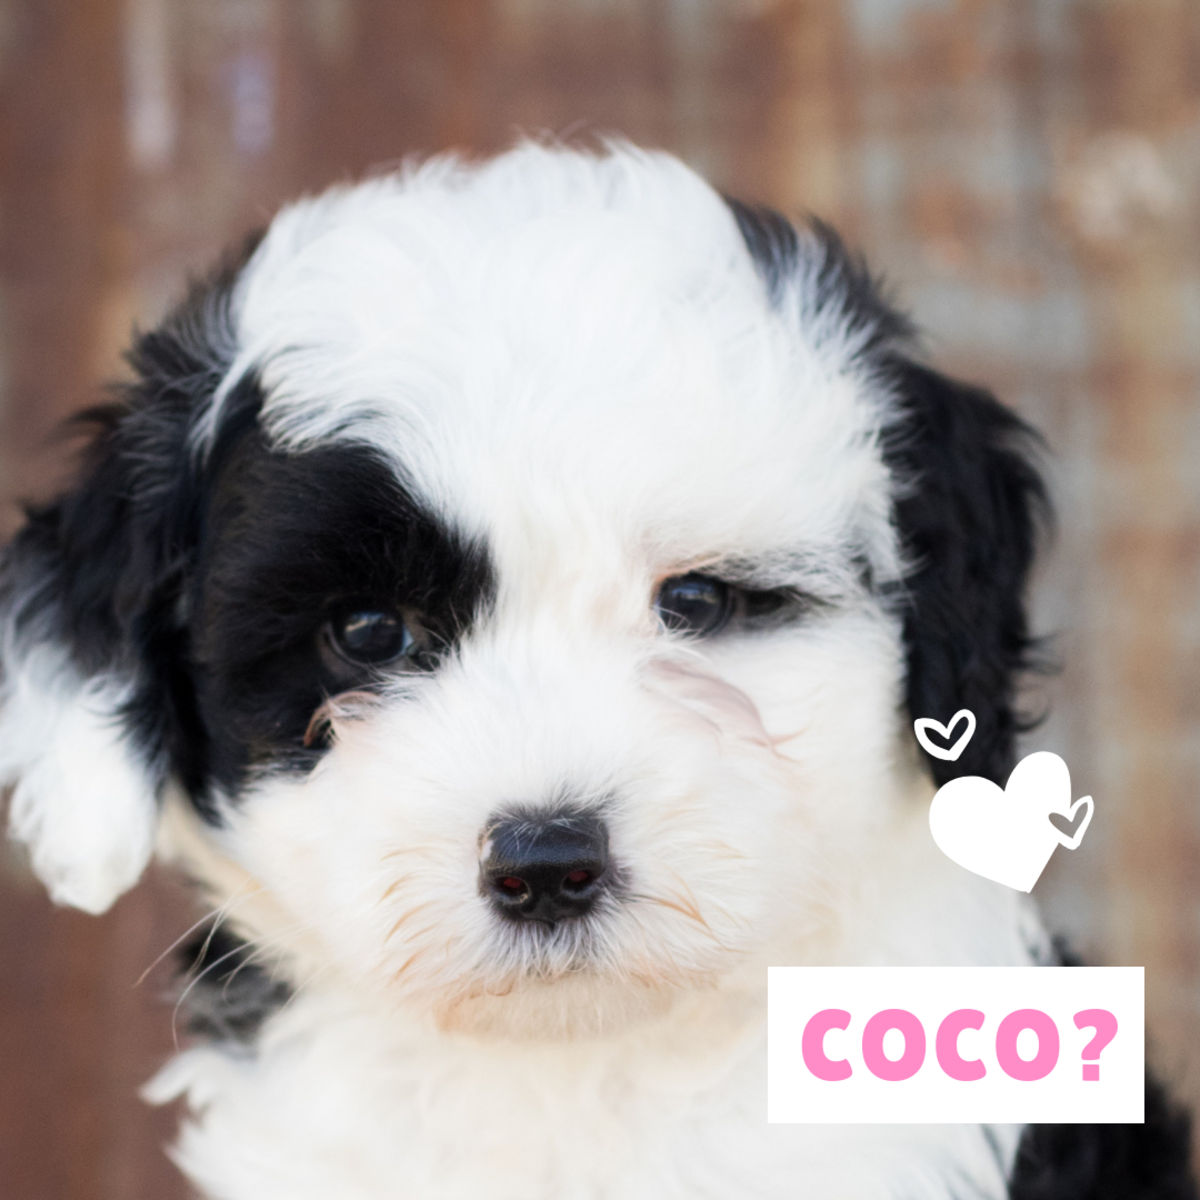 Is your new puppy a Coco?